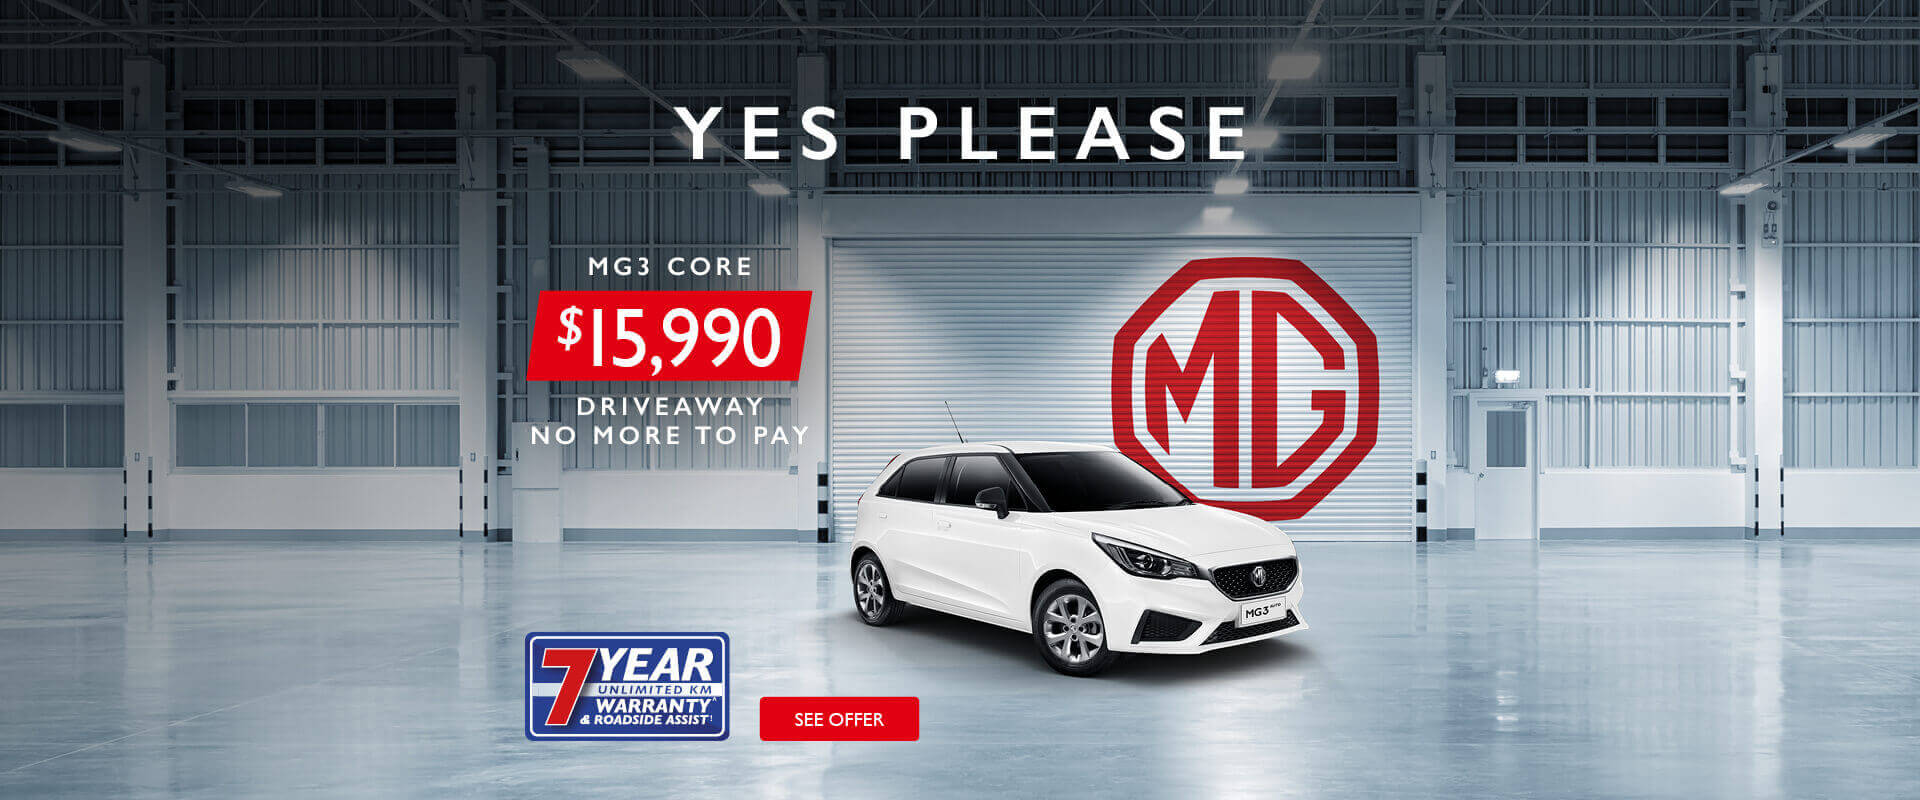 MG3 Core Offer